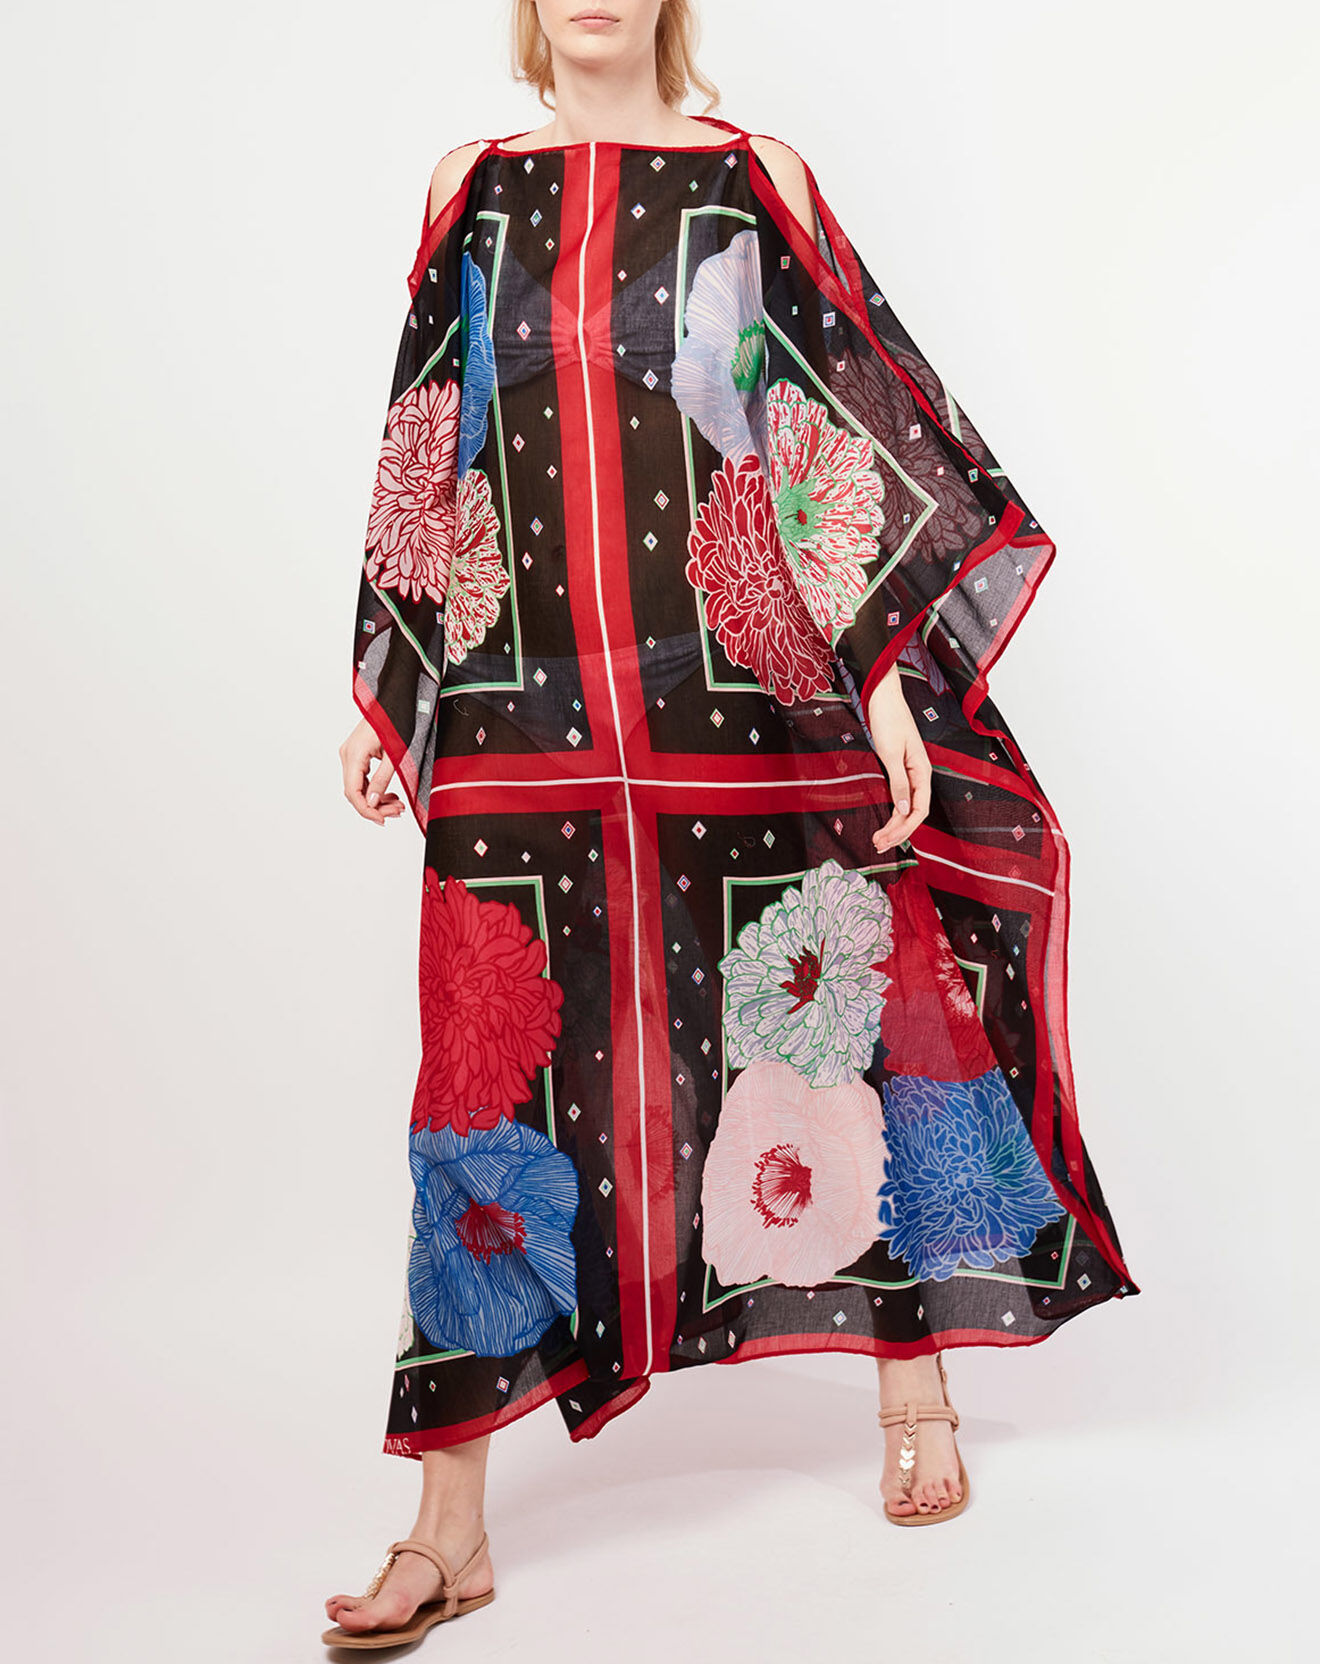 Robe ample Mily Bouquet noir/multicolore